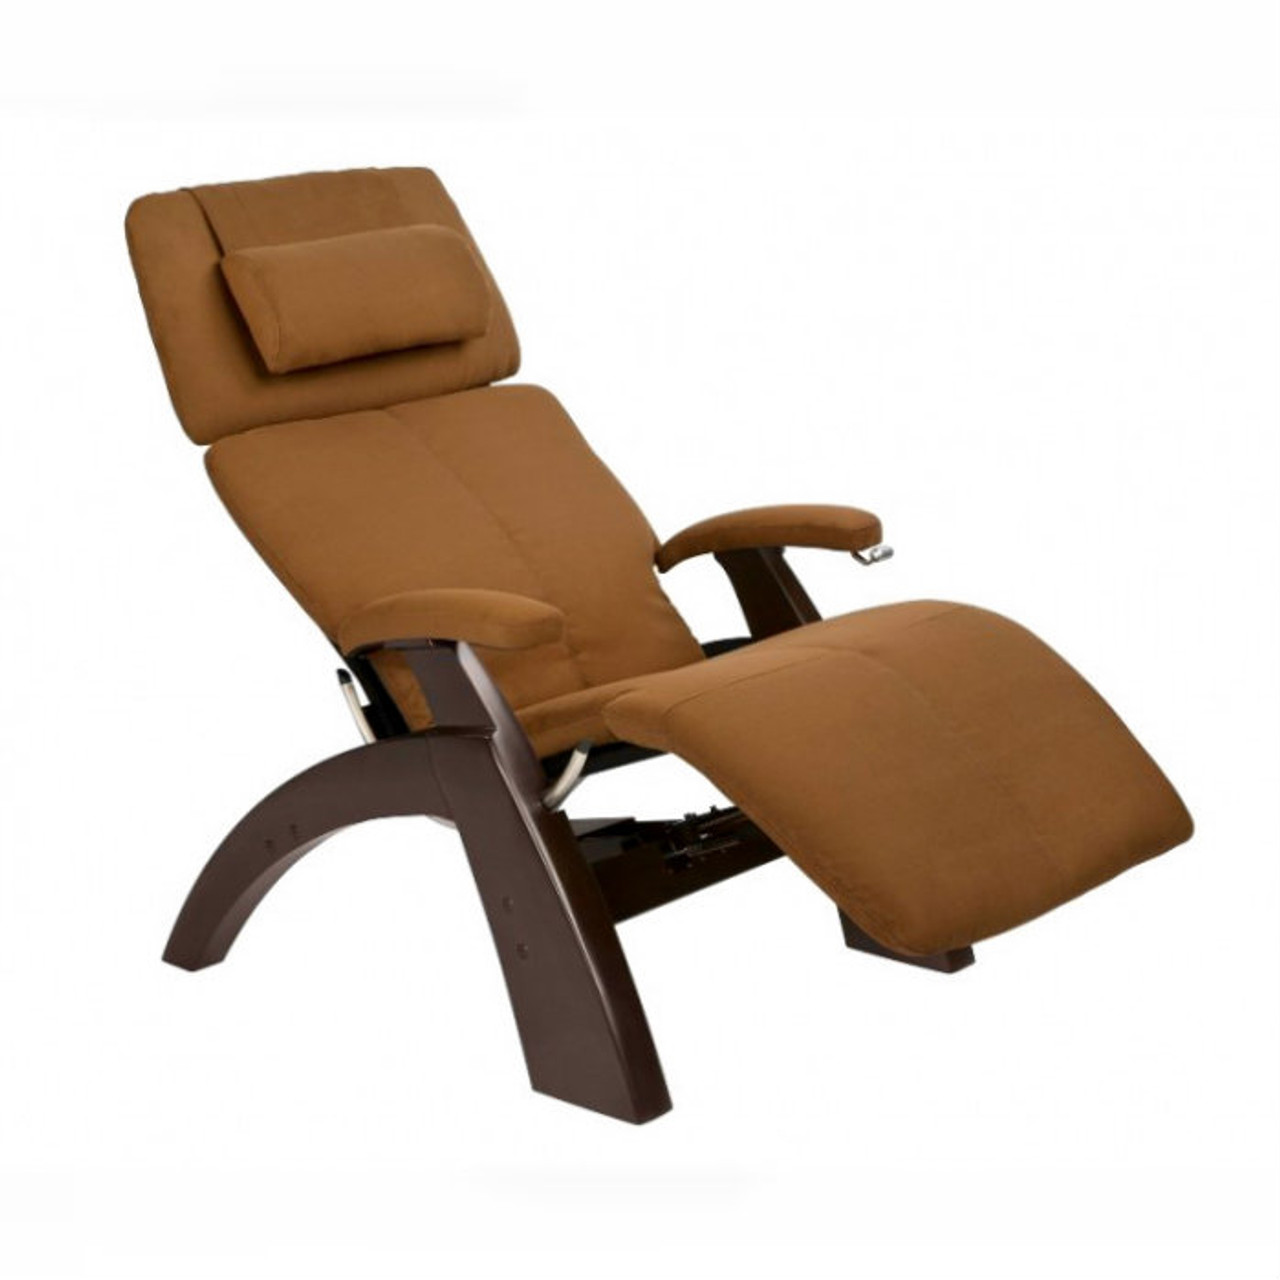 human touch chairs linen dining chair covers australia pc 095 zero gravity recliner classic power unwind com the shown in cashew sofsuede ready to relax your day away